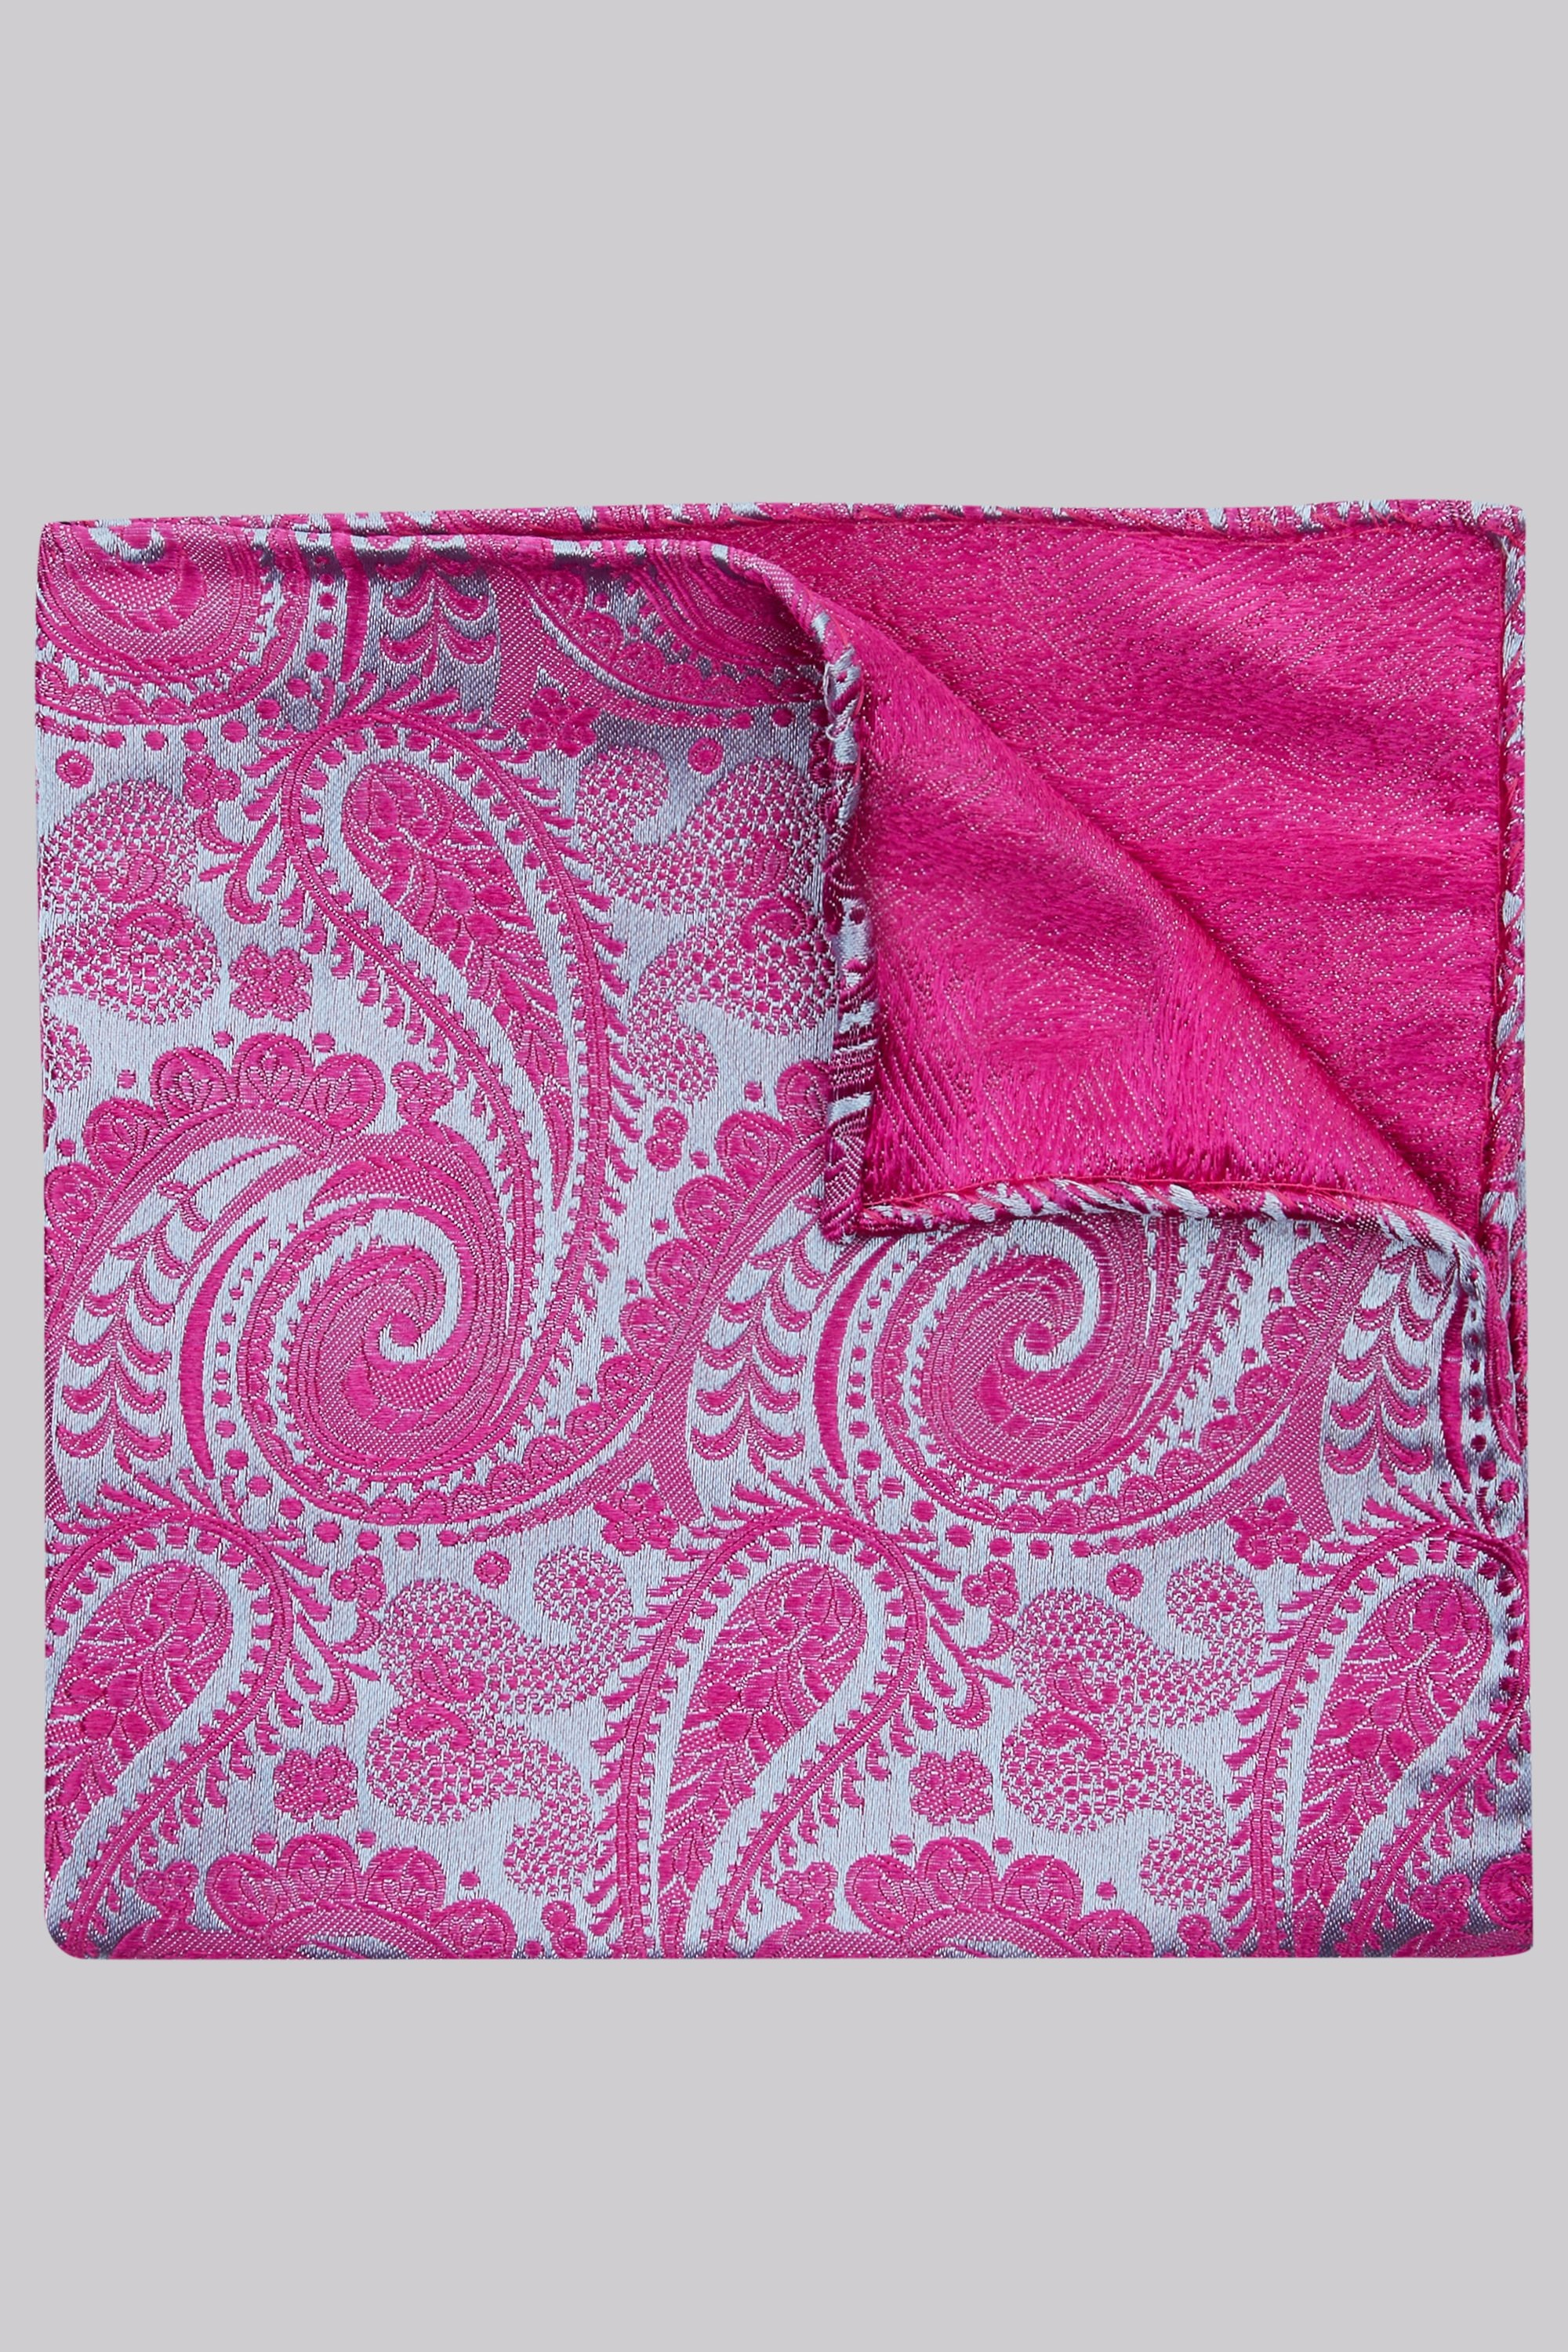 Moss Bros Moss 1851 Pink and Blue Paisley Silk Pocket Square